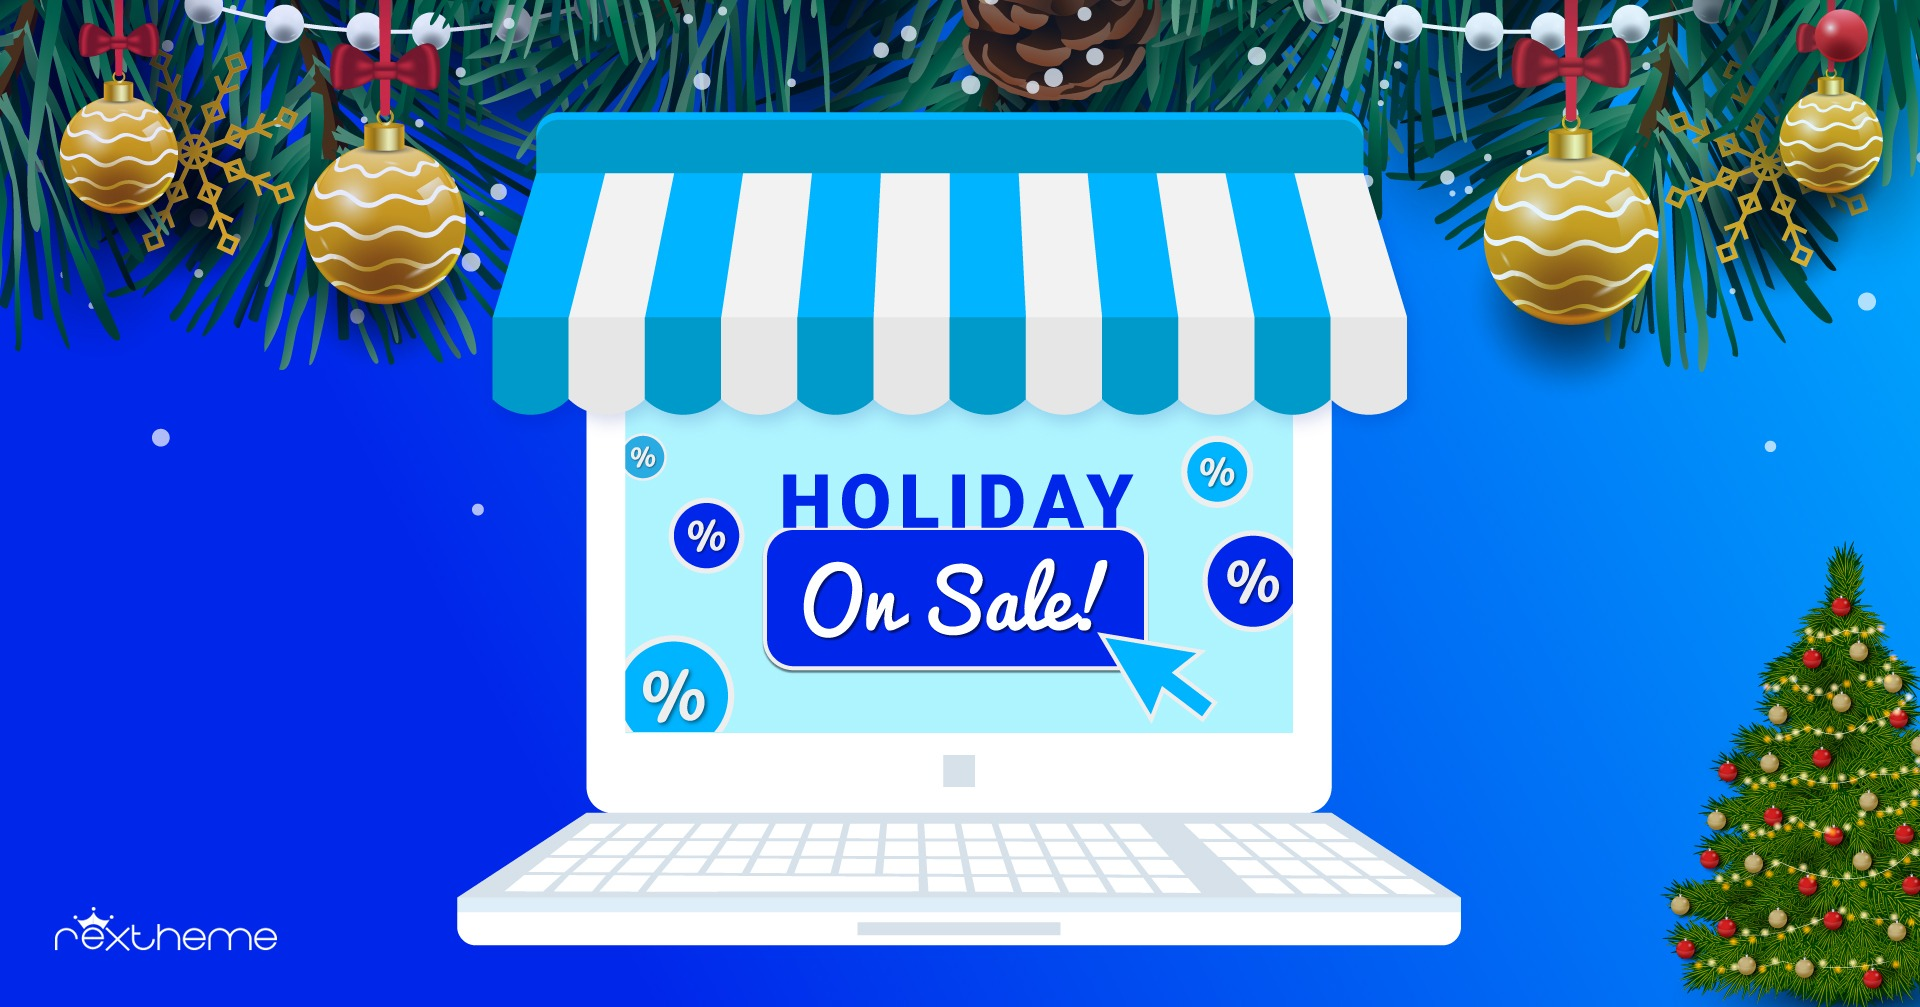 15 Amazing Ways To Prepare Your WooCommerce Store For Holidays